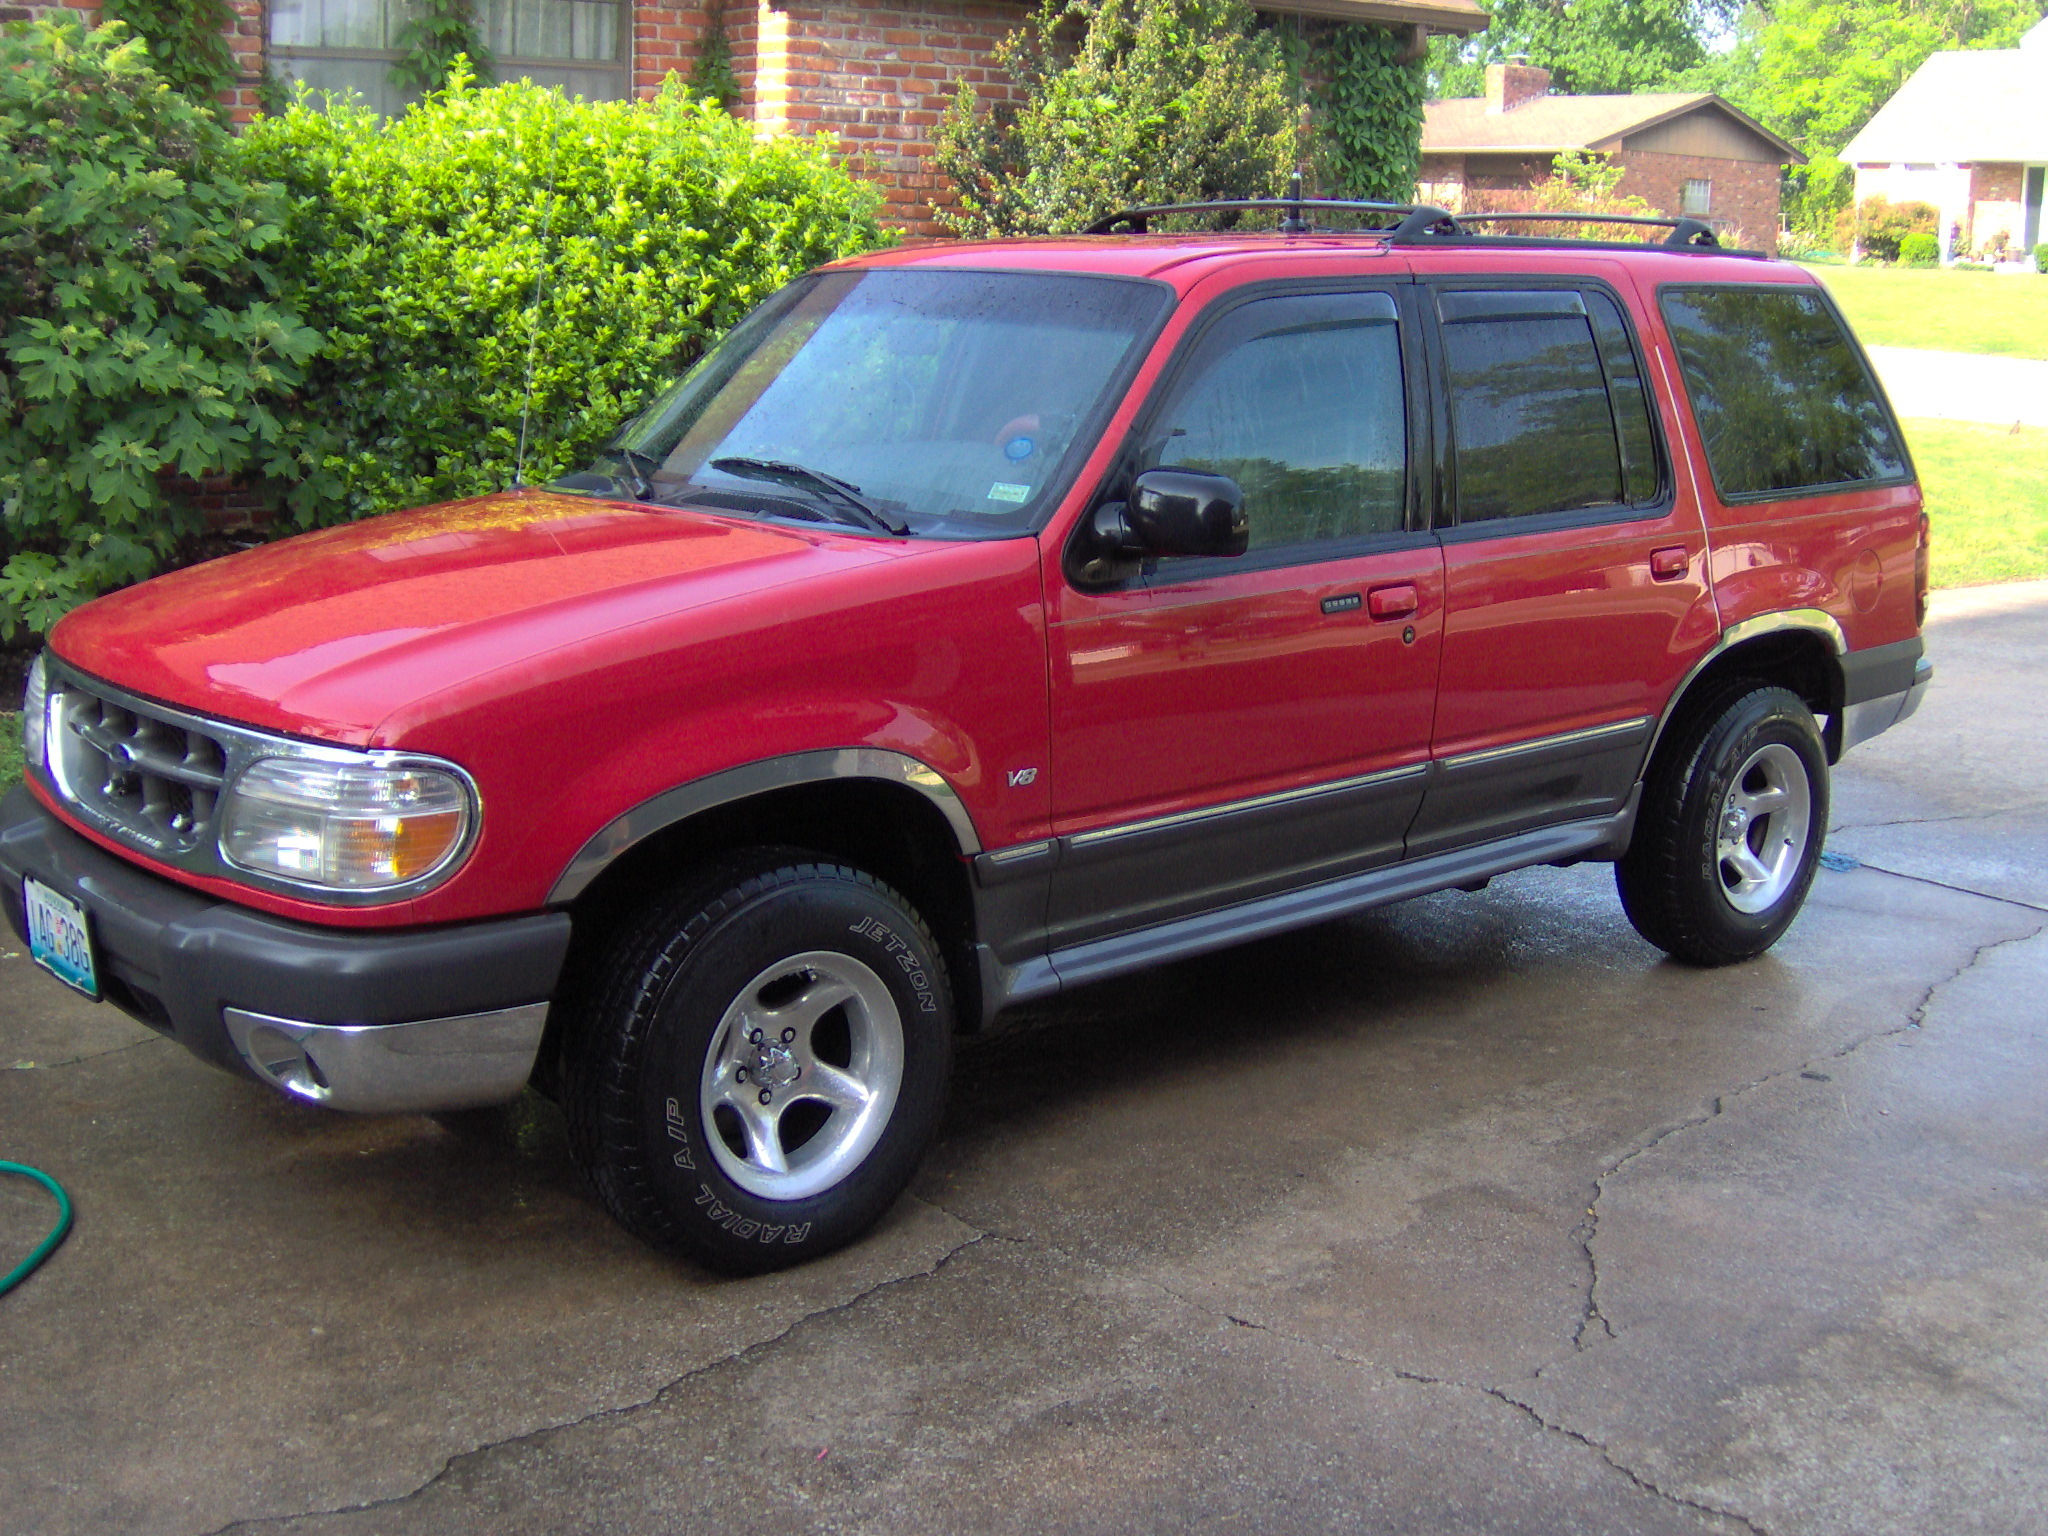 2000 Ford Explorer Red >> hitman523 1999 Ford Explorer Specs, Photos, Modification Info at CarDomain